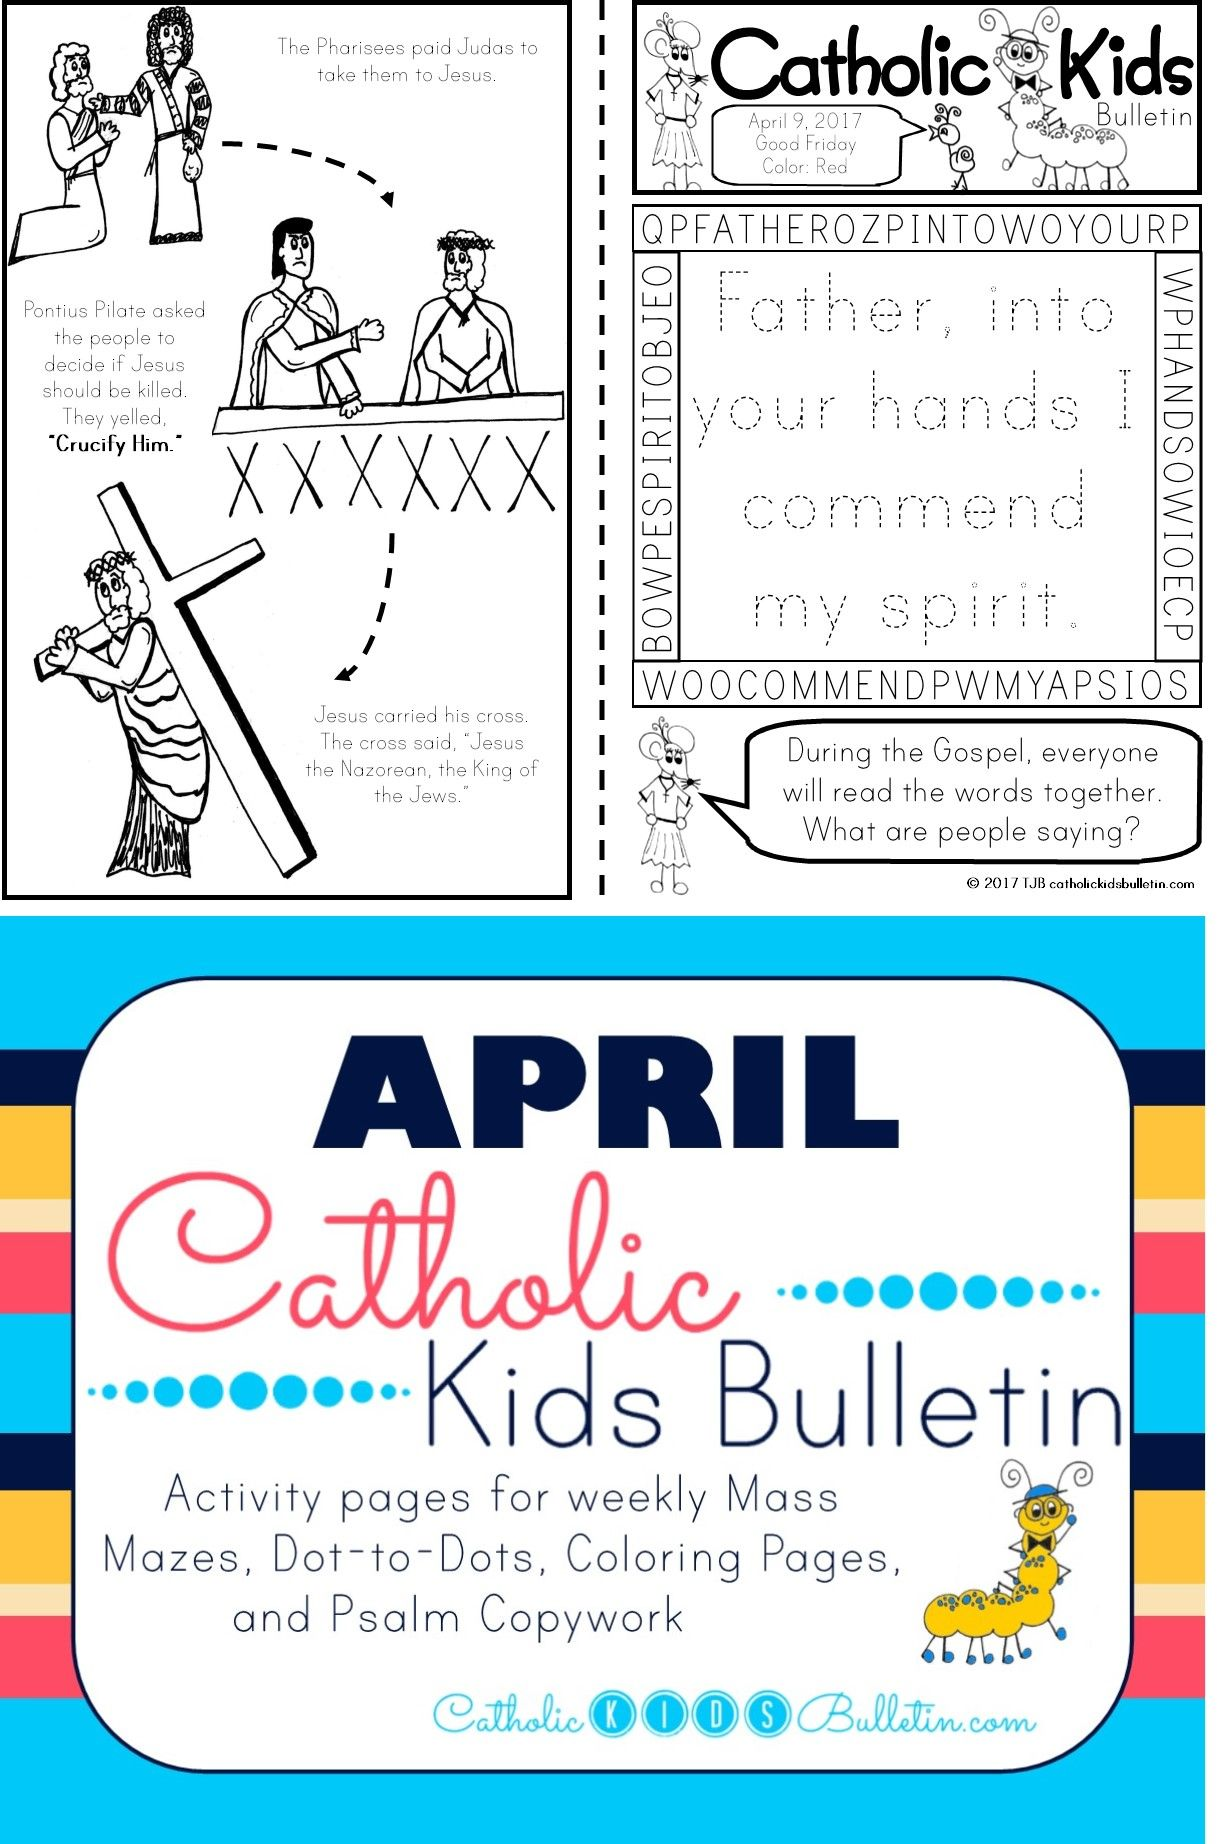 Check out these awesome Catholic Mass Bulletins for kids! These coloring and activity pages are perfect for PreK, Kindergarten, 1st, and 2nd grades. The kids can learn about the Gospel and a Saint of the week so they can focus during Catholic Mass! They are available in Spanish or English. Good Friday Psalm 31 John 18 John 19